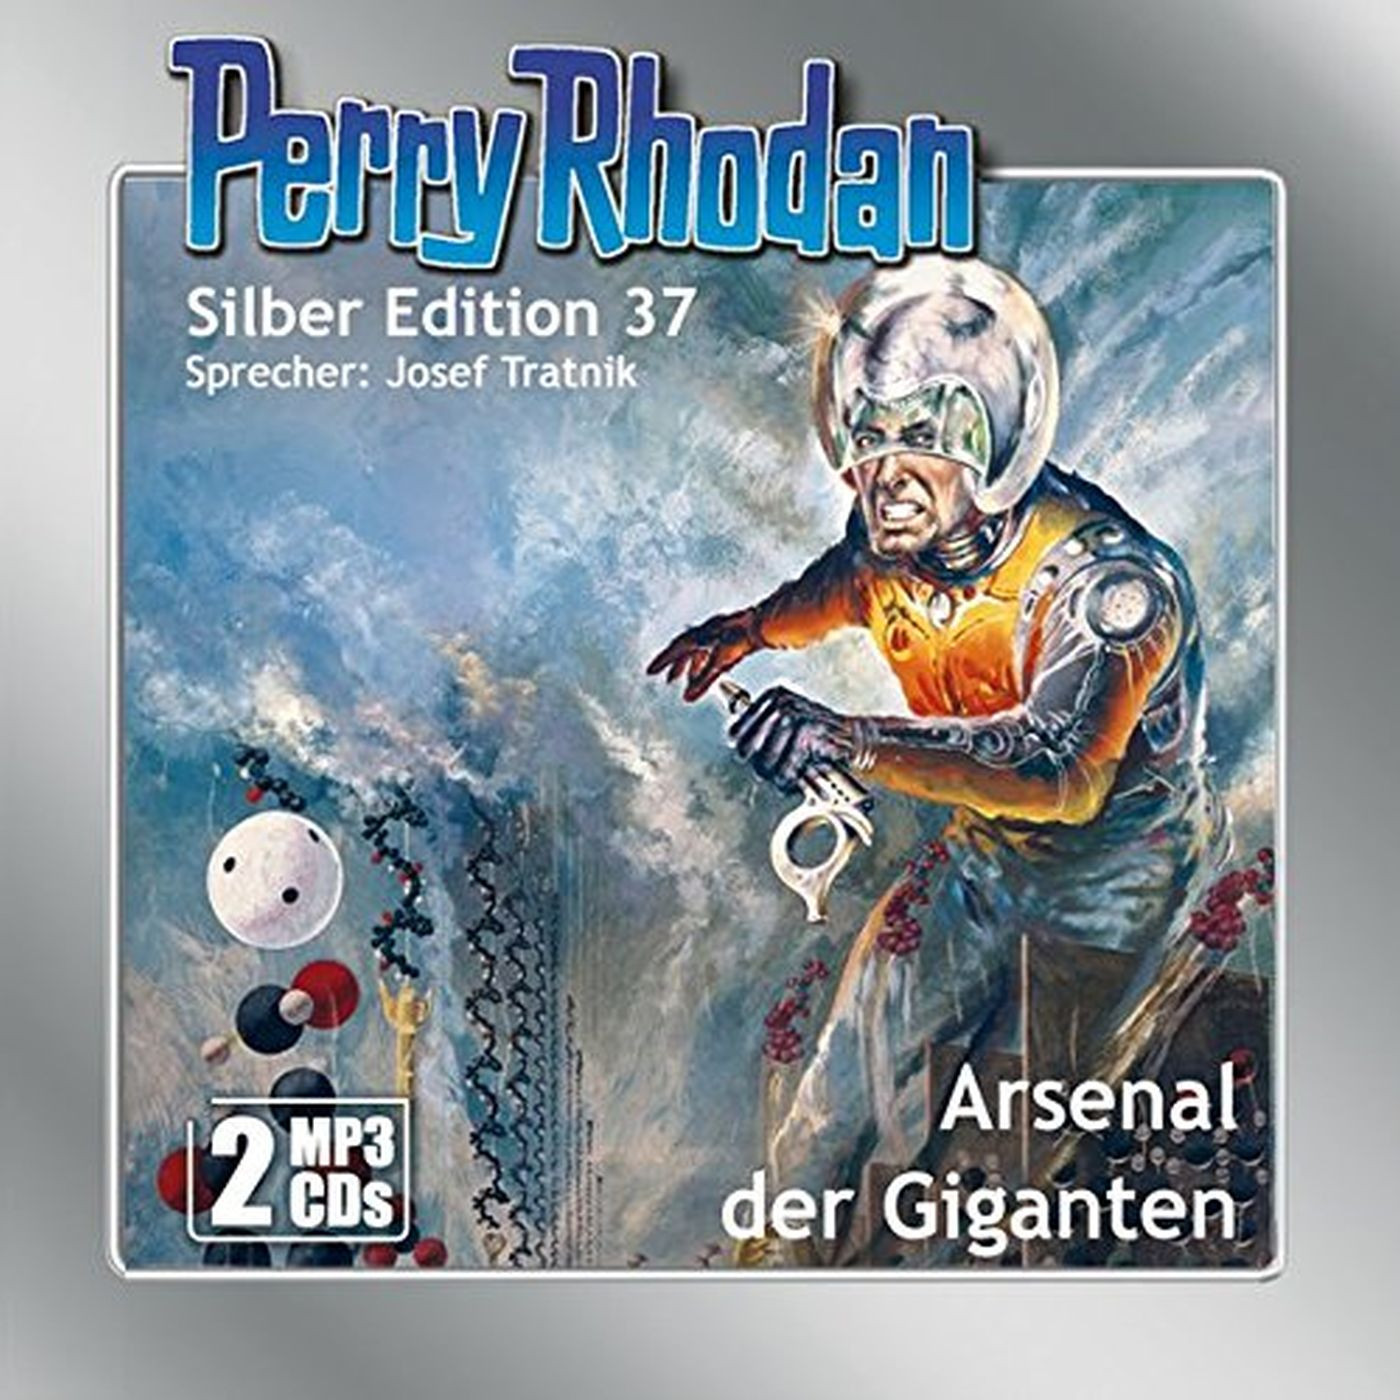 Perry Rhodan Silber Edition 37 Arsenal der Giganten (2 mp3-CDs)